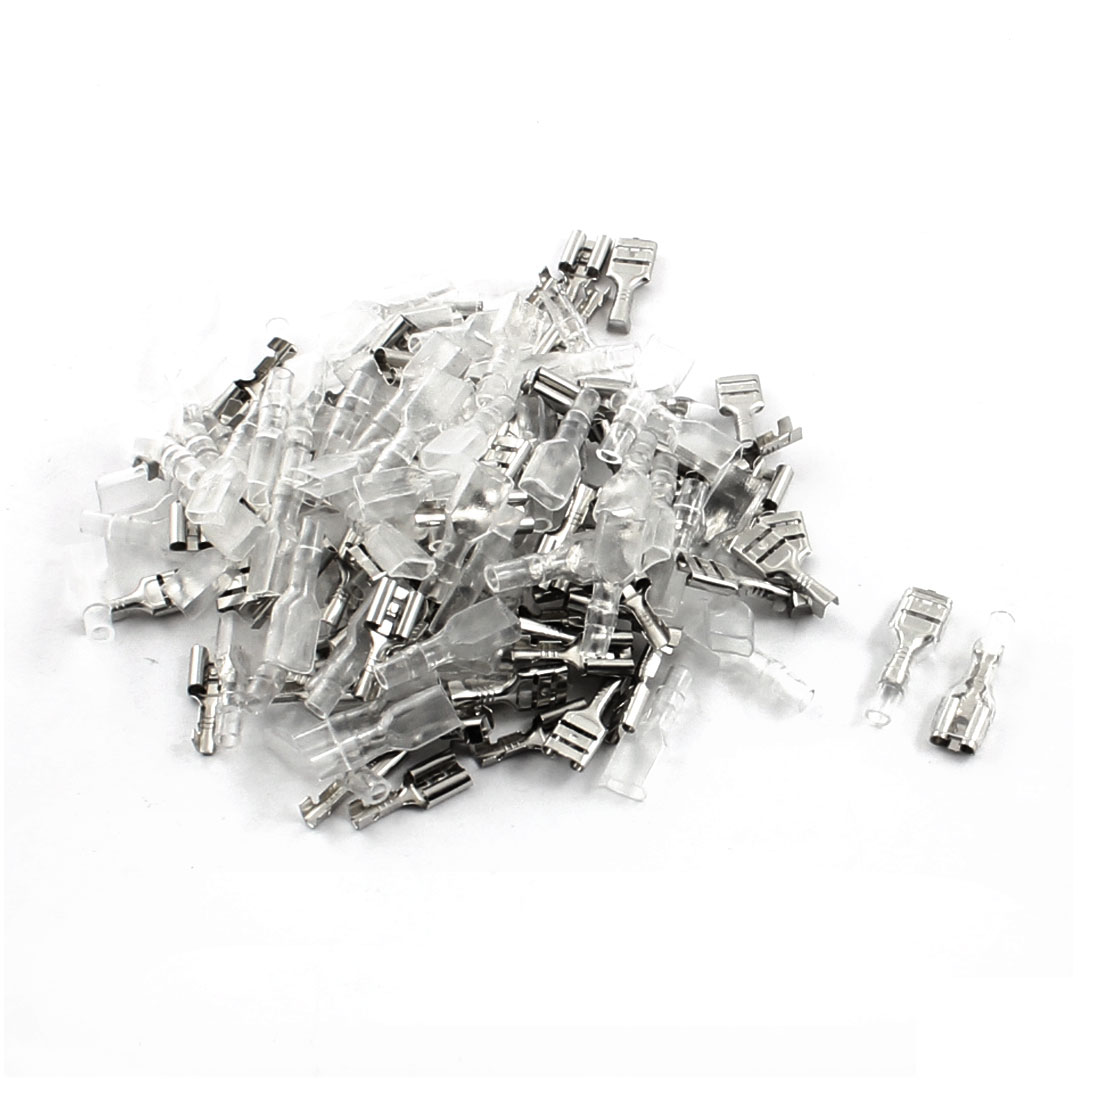 75Pcs 6.3mm Spade Crimp Cable Terminals Connector w PVC Insulated Cover